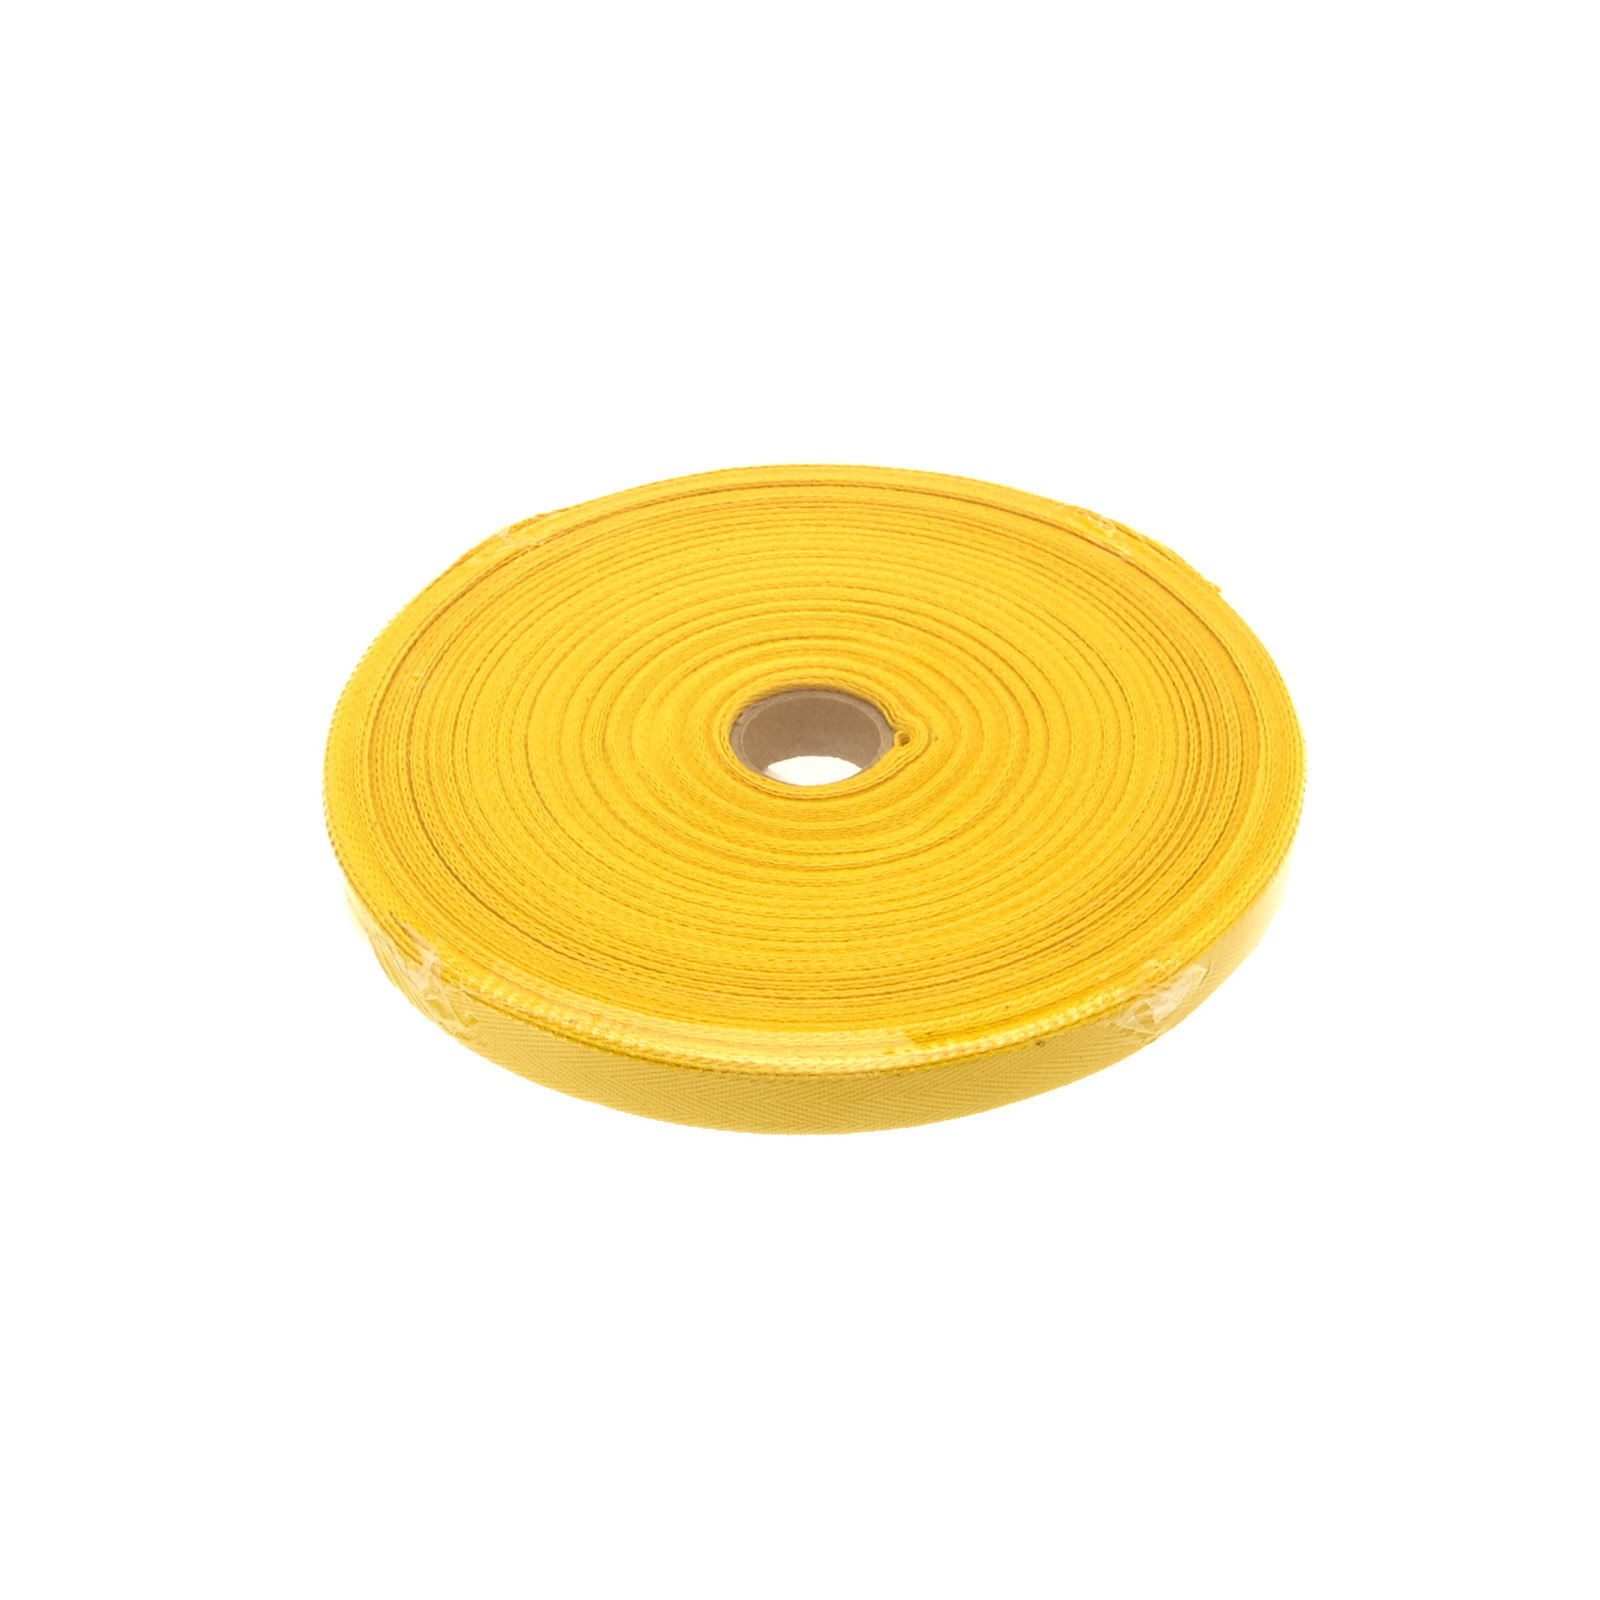 Cotton Twill Tape Roll 5/8'' Yellow by Notions Marketing in USA